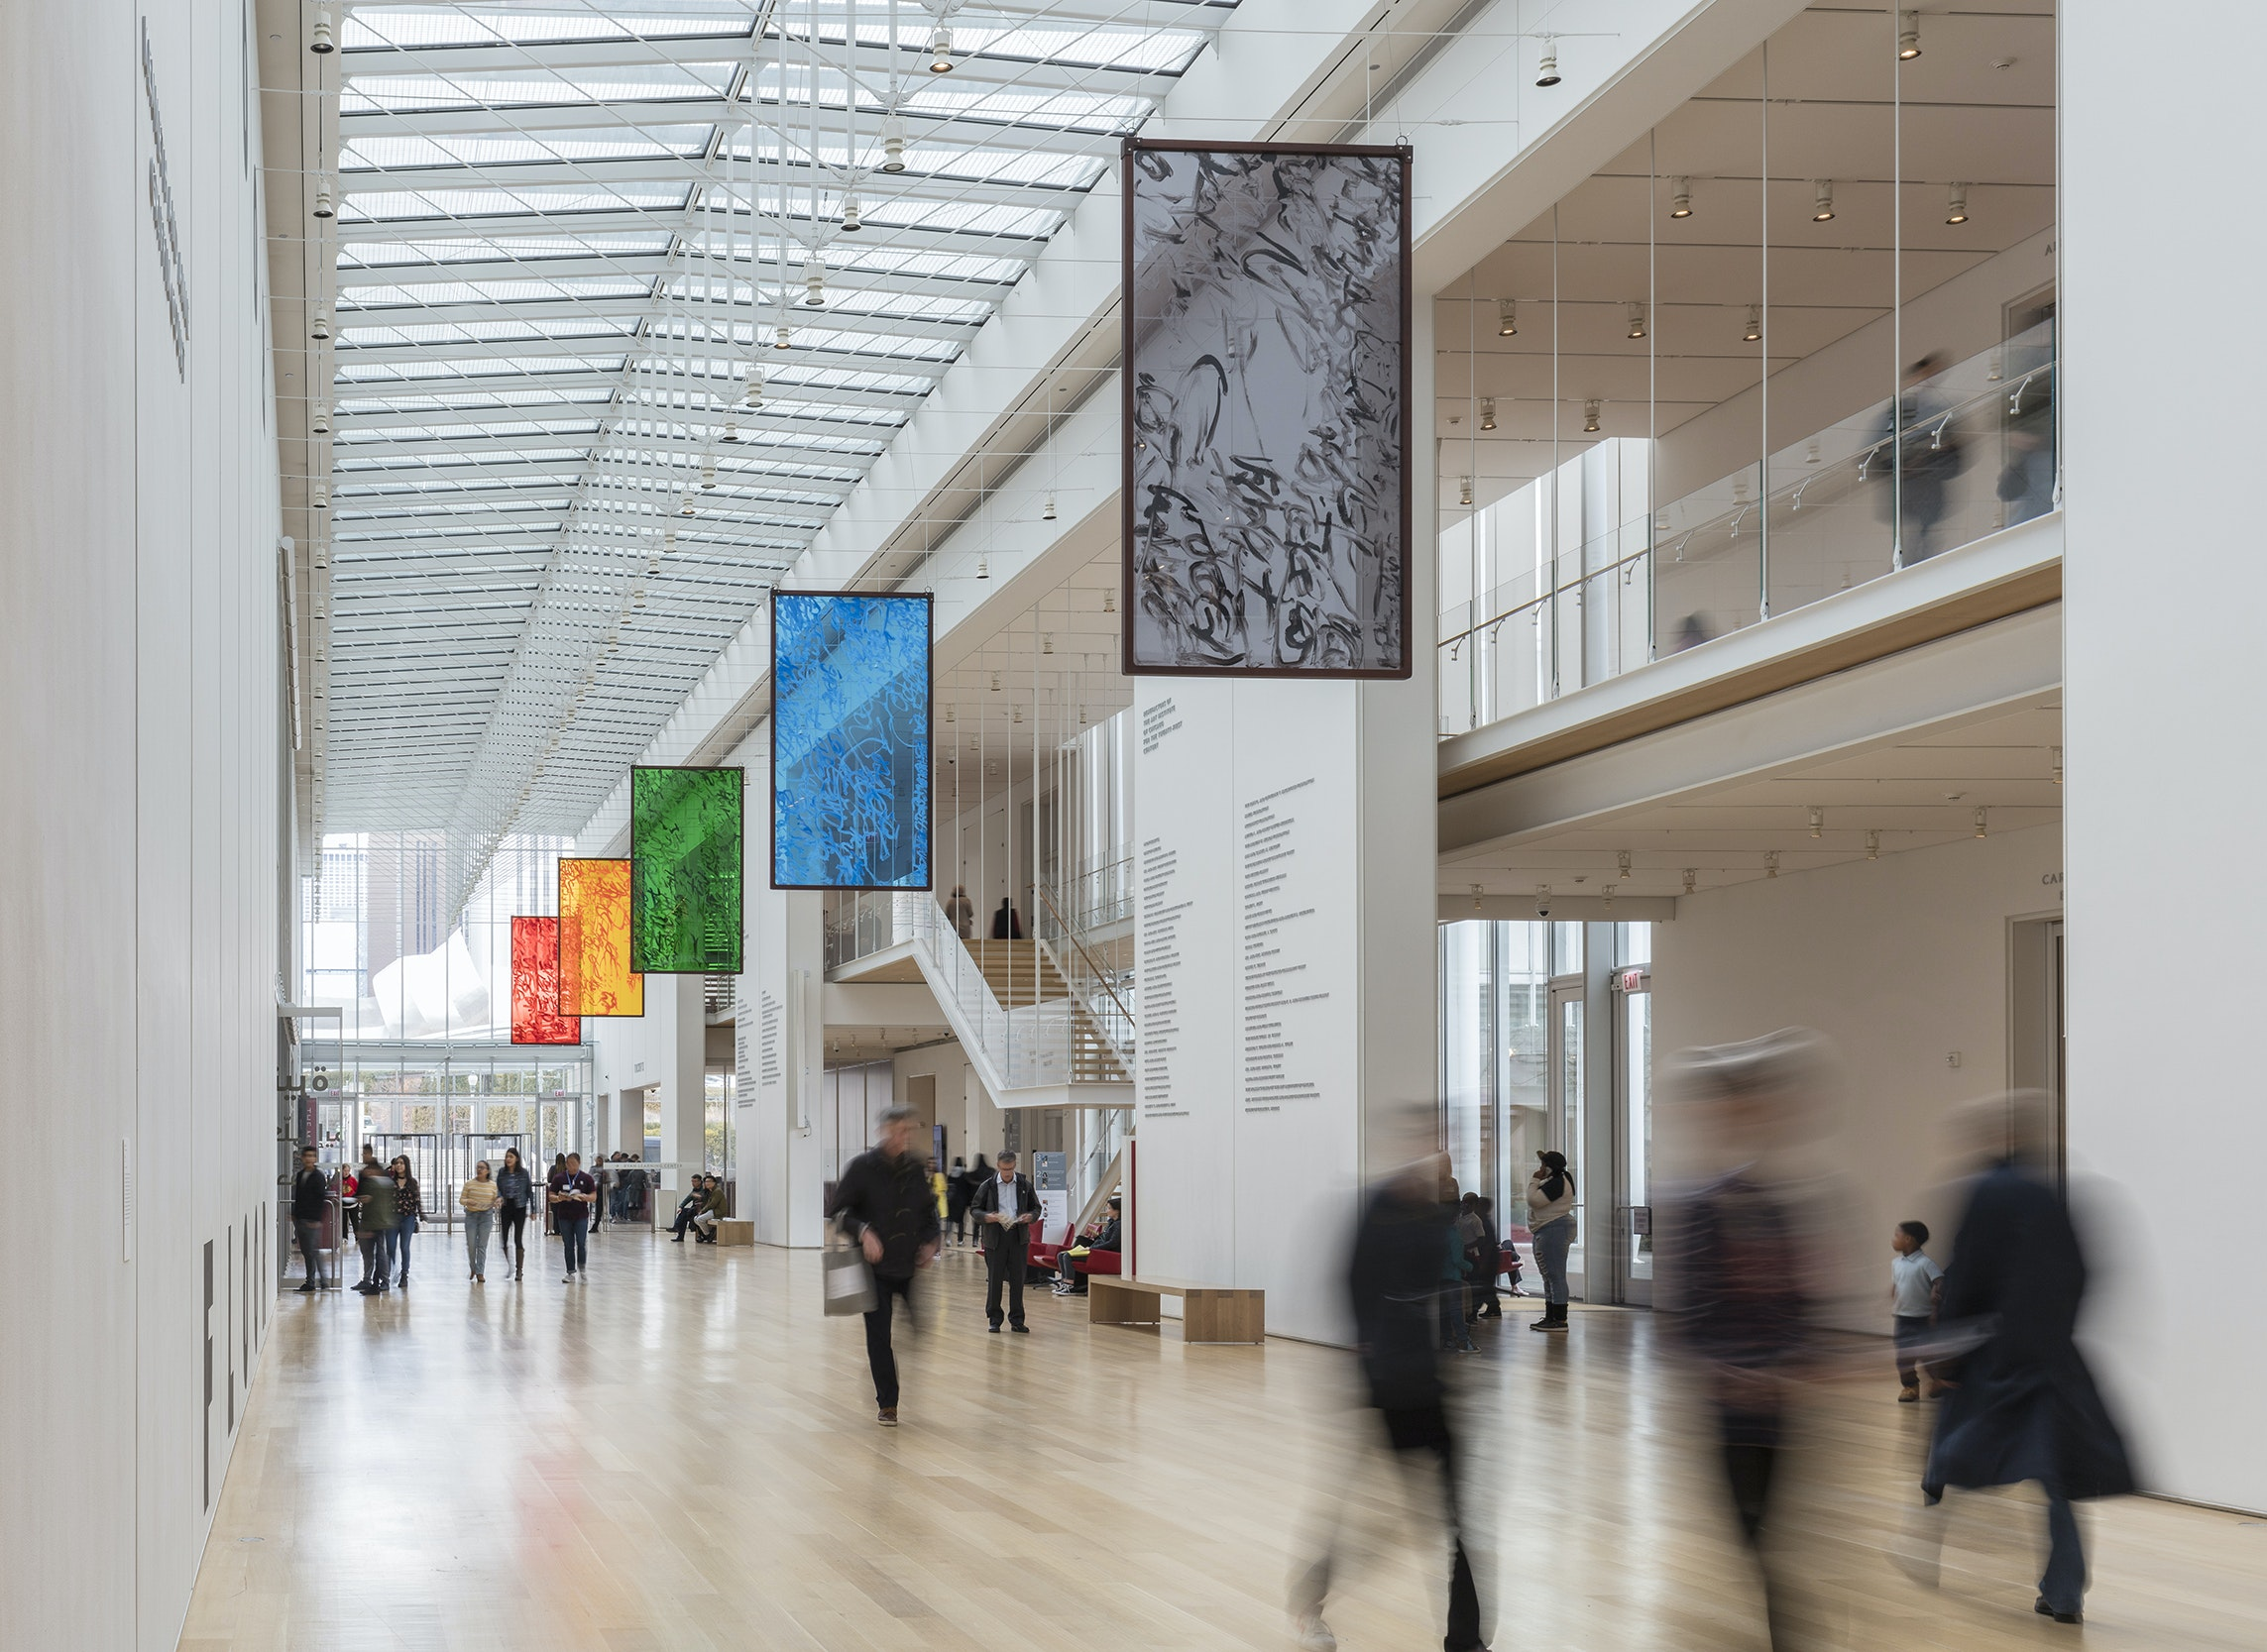 A photo of a installation of colored glass panels hanging over Griffin Court, a large open space in the museum. People walk underneath the panels.